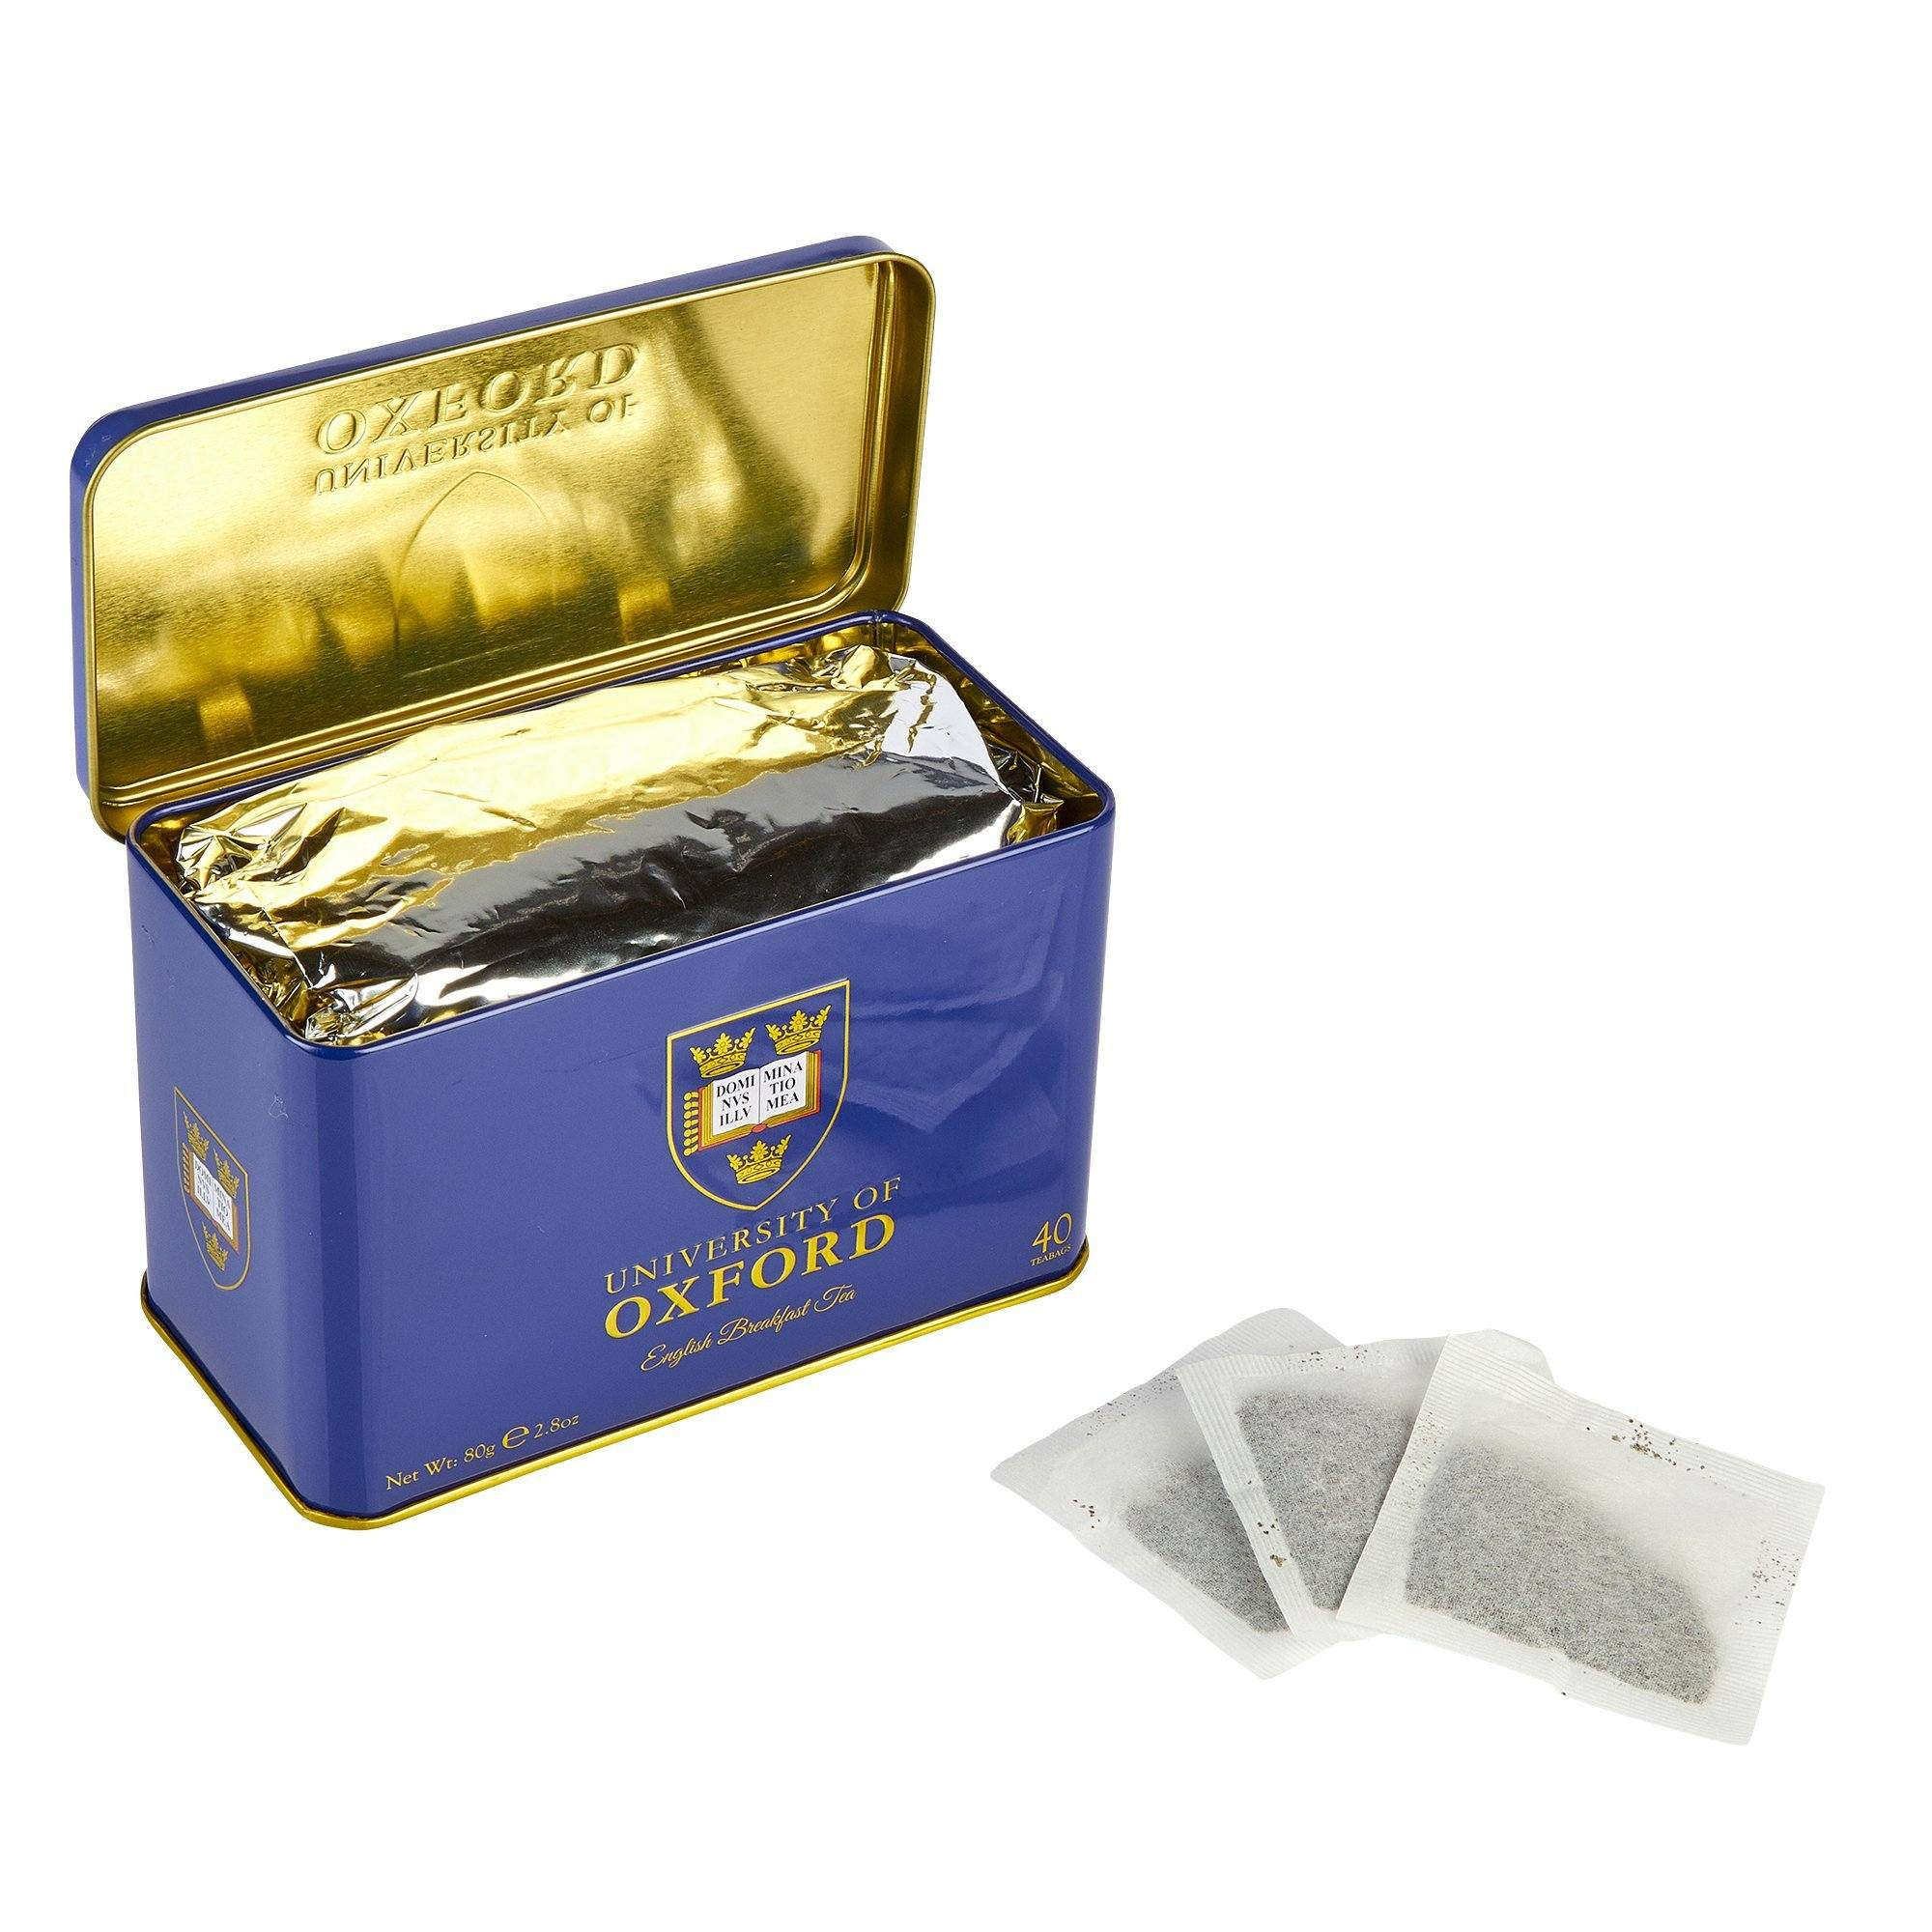 University Of Oxford English Breakfast Tea Tin 40 Teabags Black Tea New English Teas